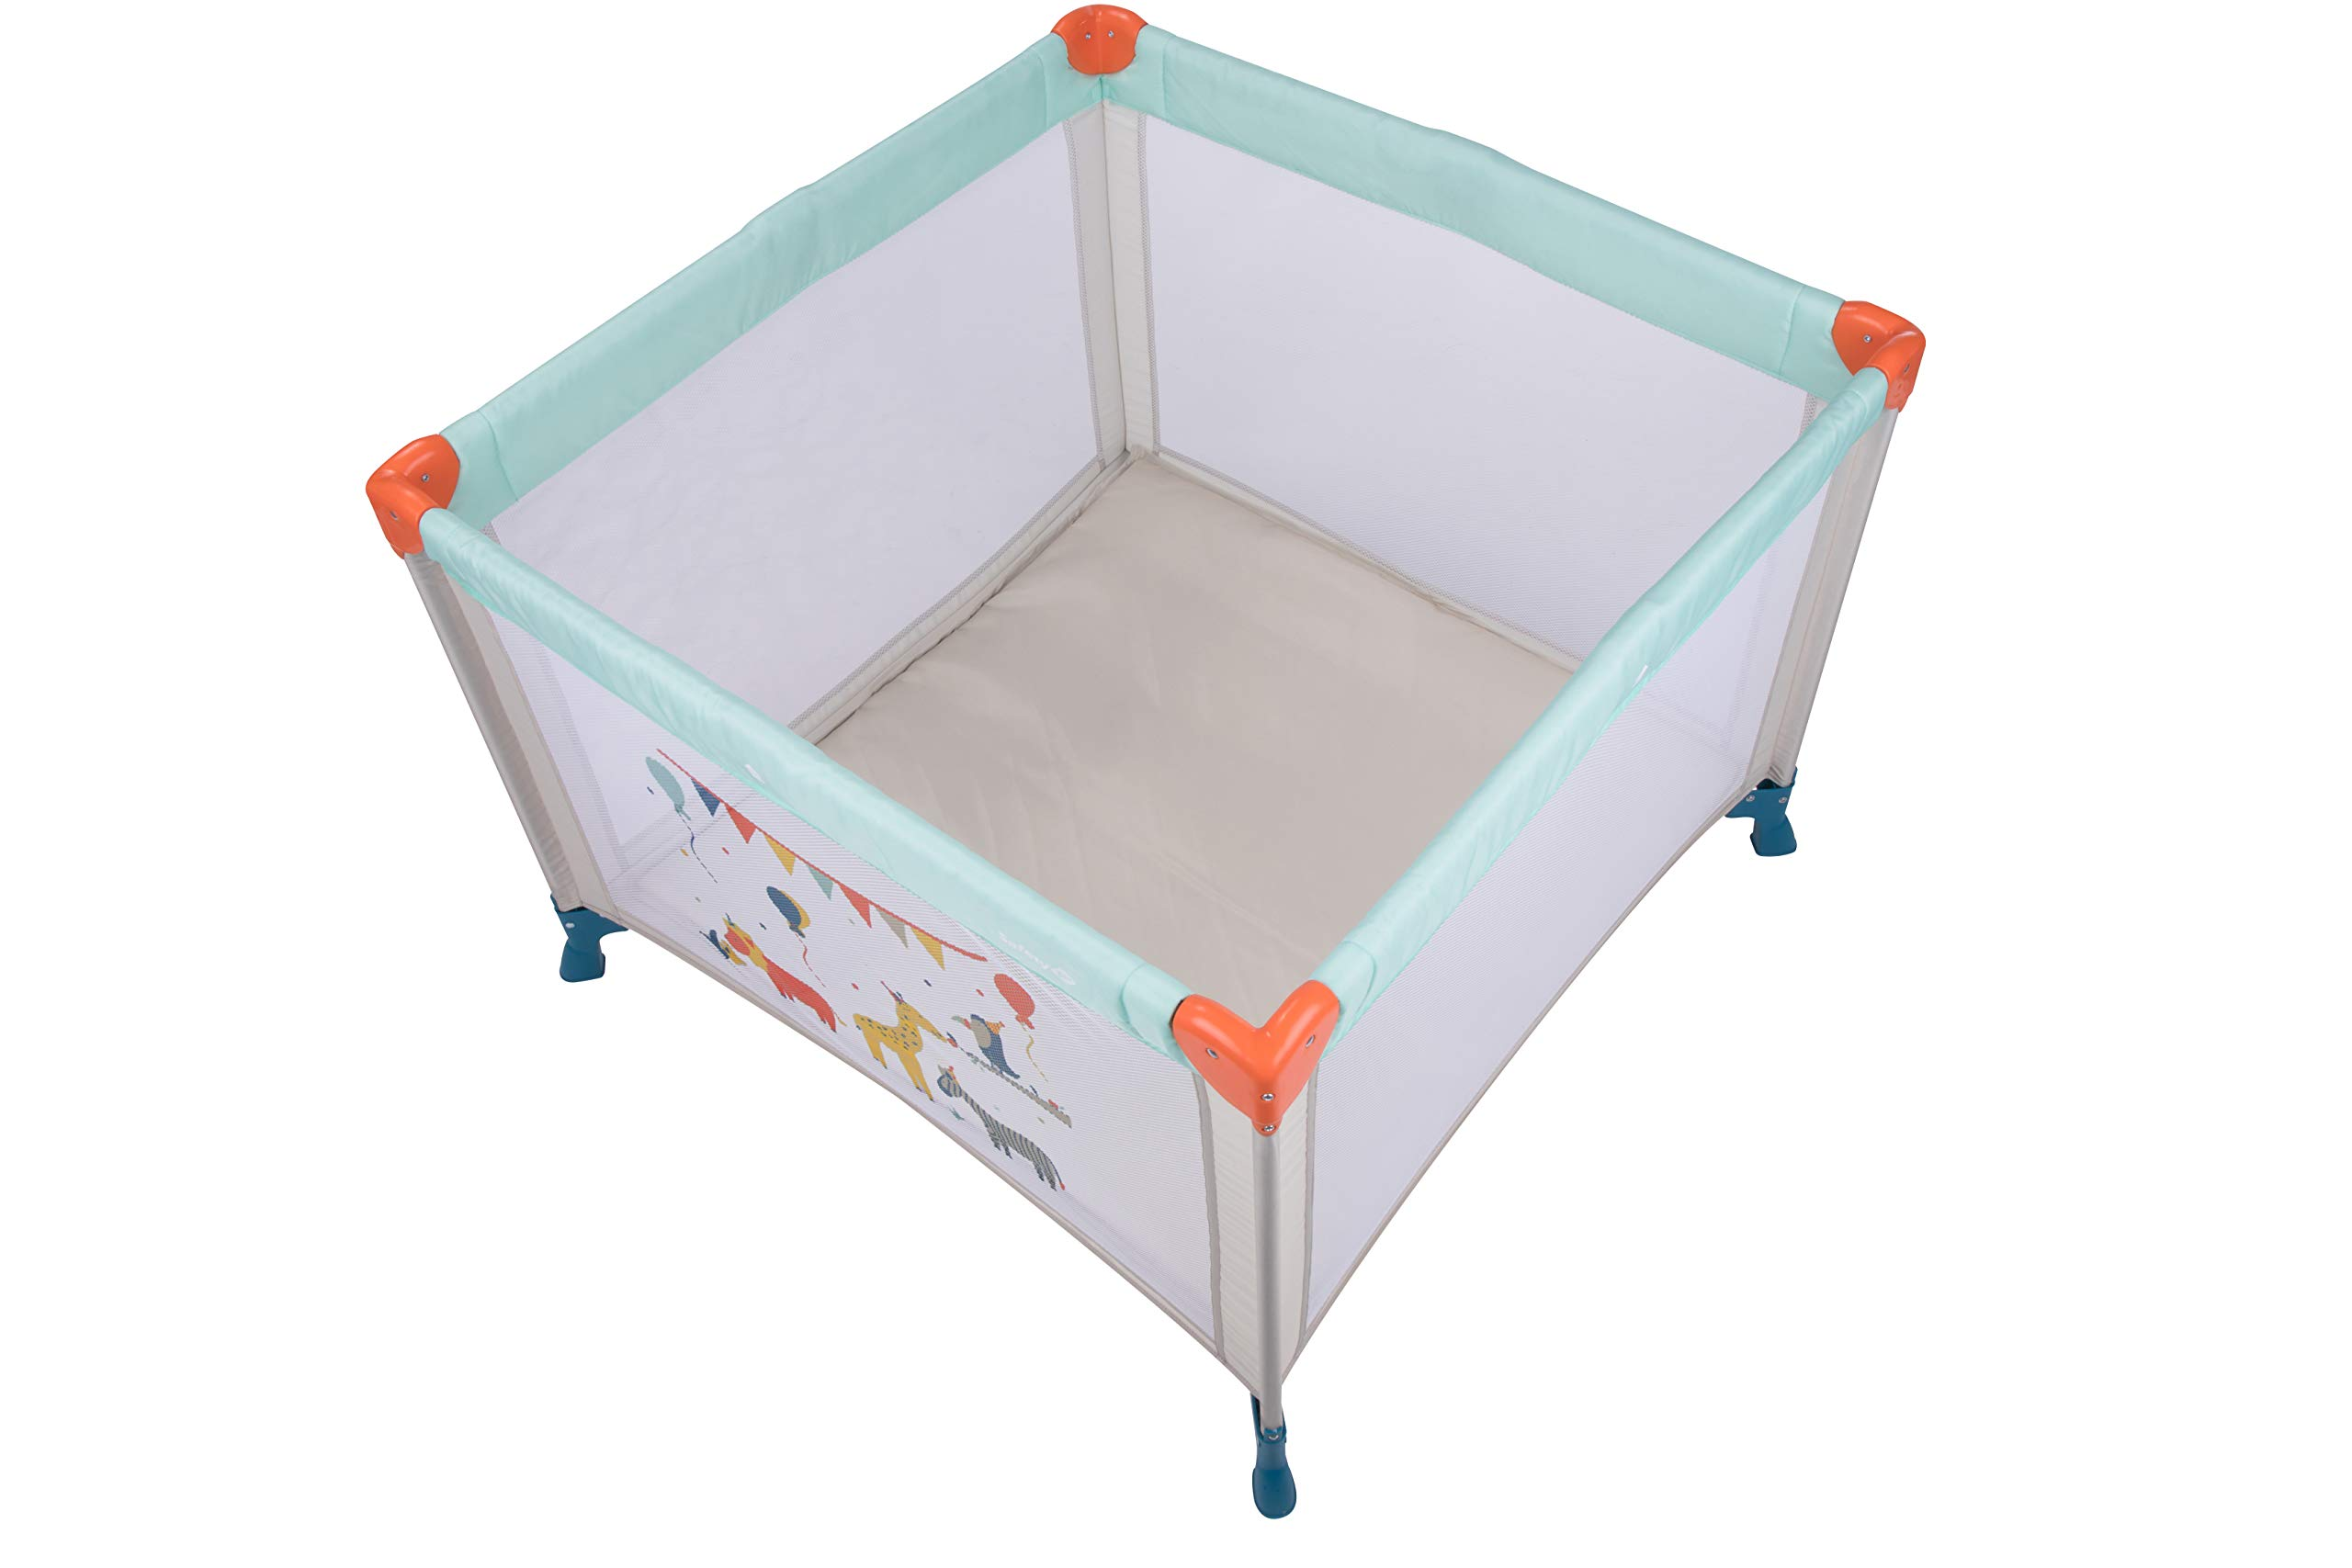 Safety 1st Circus Compact Travel Cot Safety 1st Spacious play area (1 m x 1 m) 2 uses: in playpen or in travel bed 4 large windows nets to see baby 2